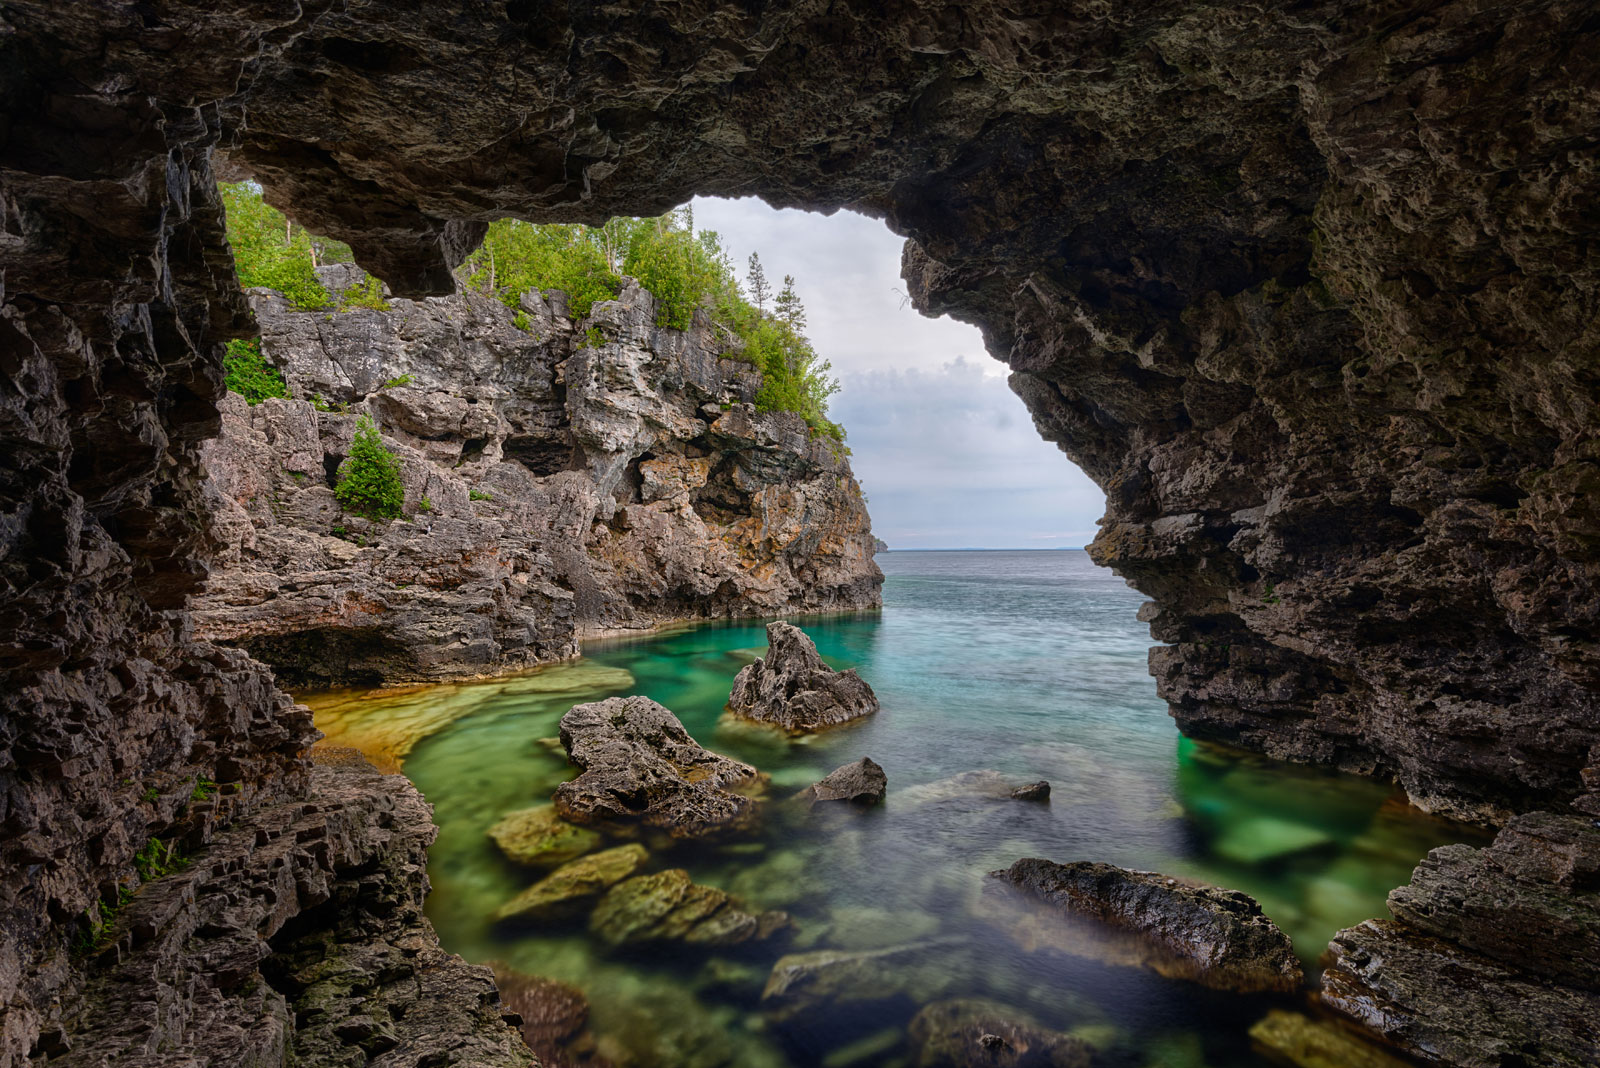 view from inside the grotto in bruce peninsula national park